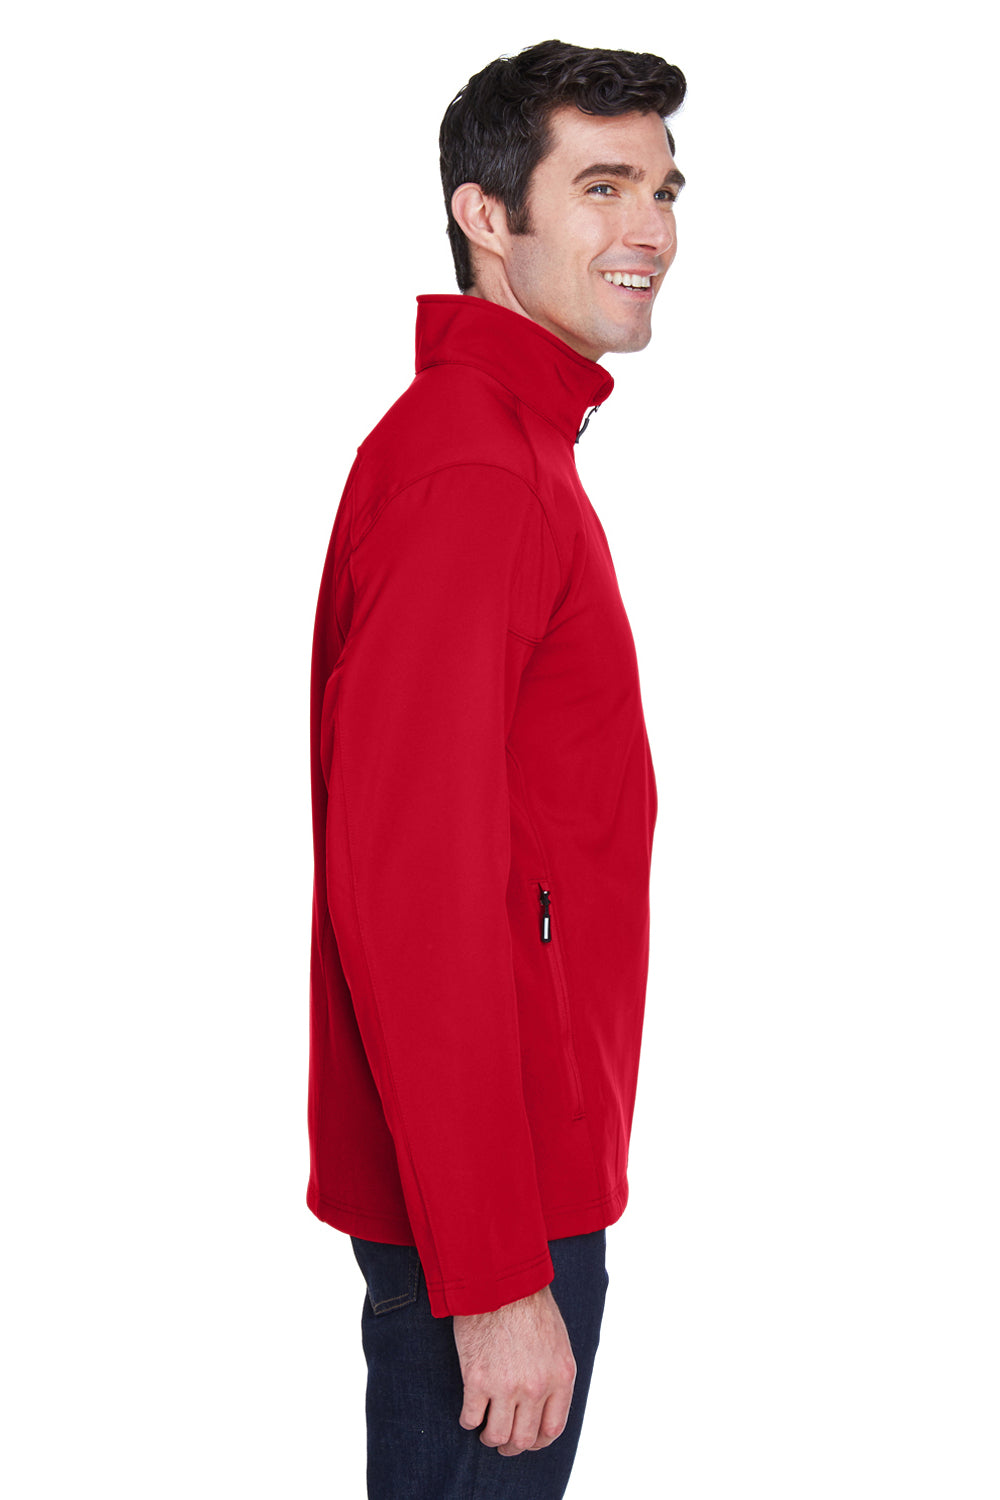 Core 365 88184 Mens Cruise Water Resistant Full Zip Jacket Red Side